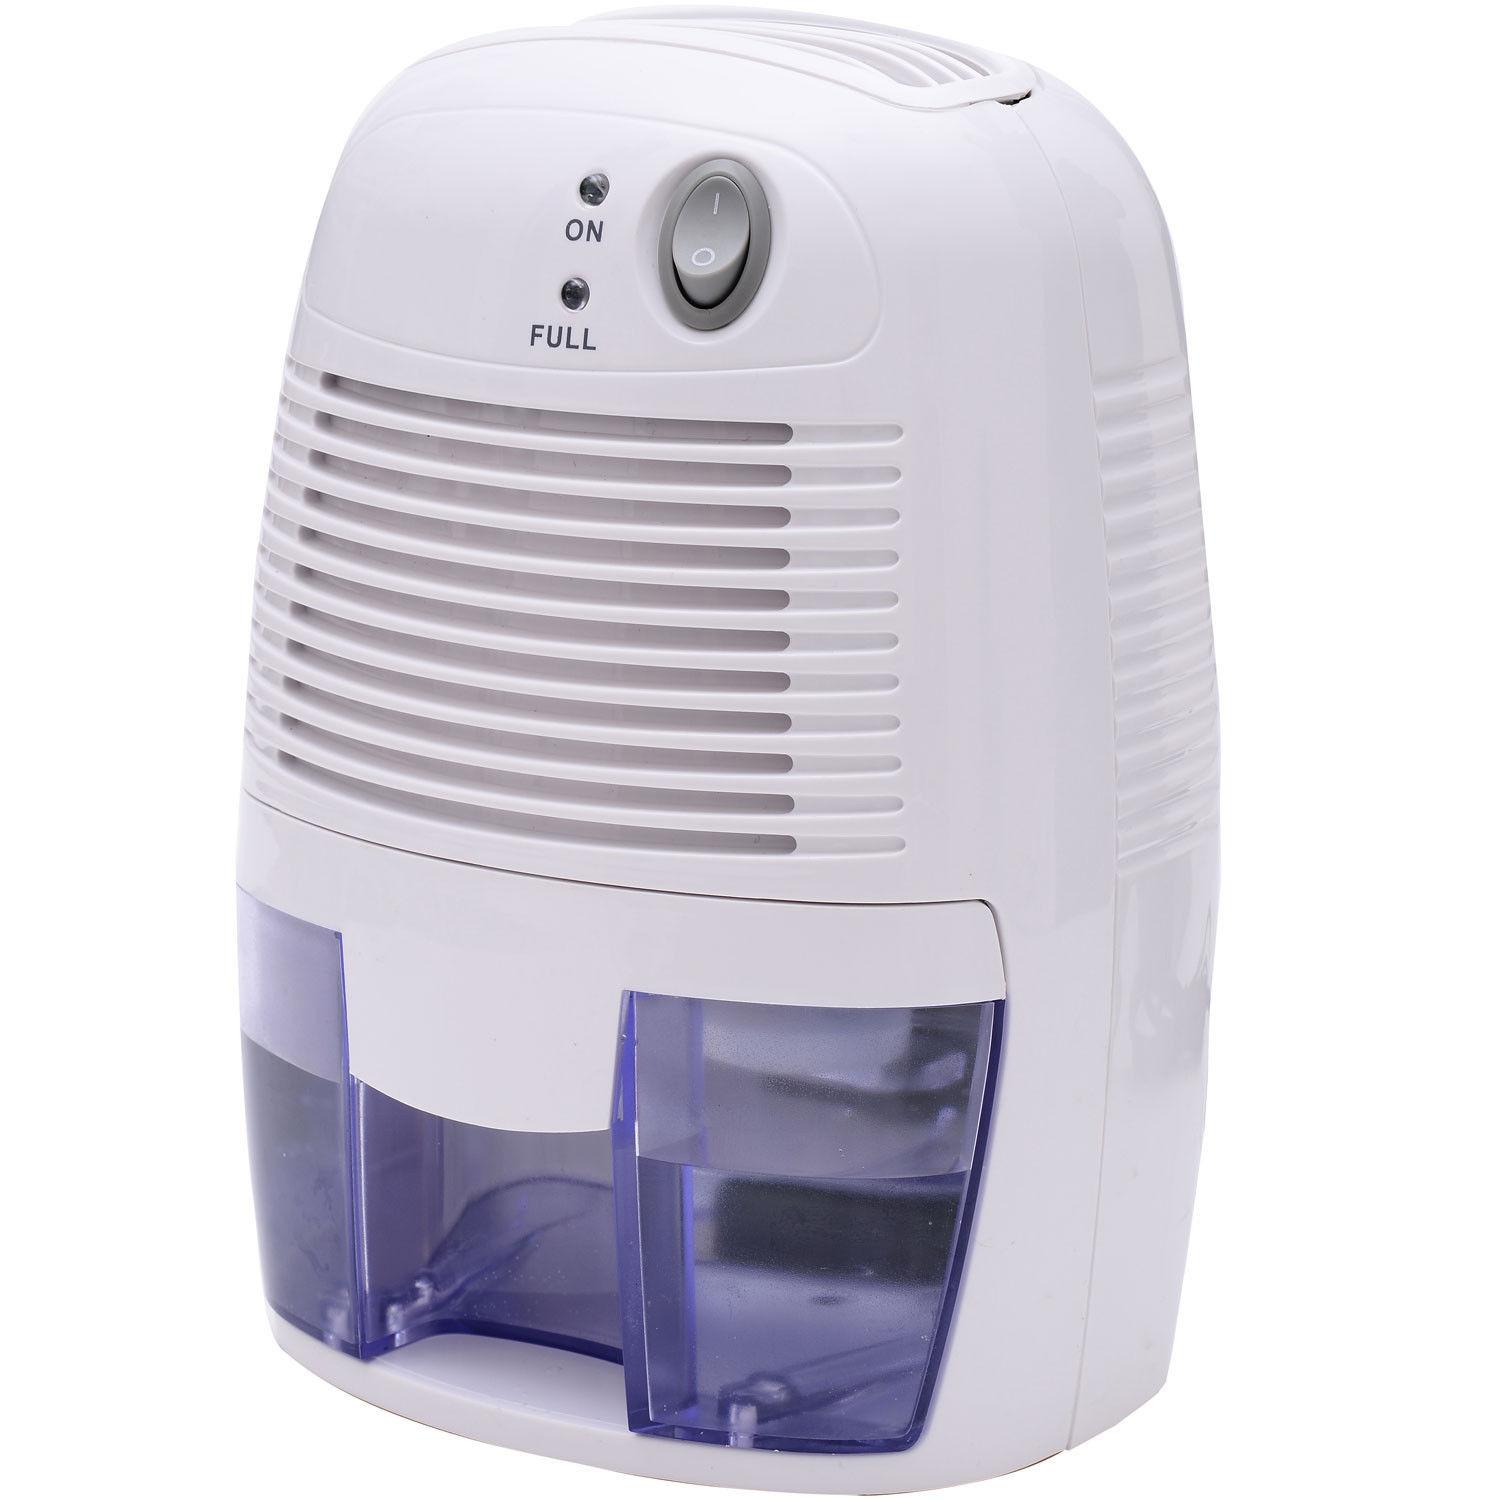 Small Dehumidifier For Bedroom Mini Room Dehumidifier Quilt Electric Air Moisture Appliance